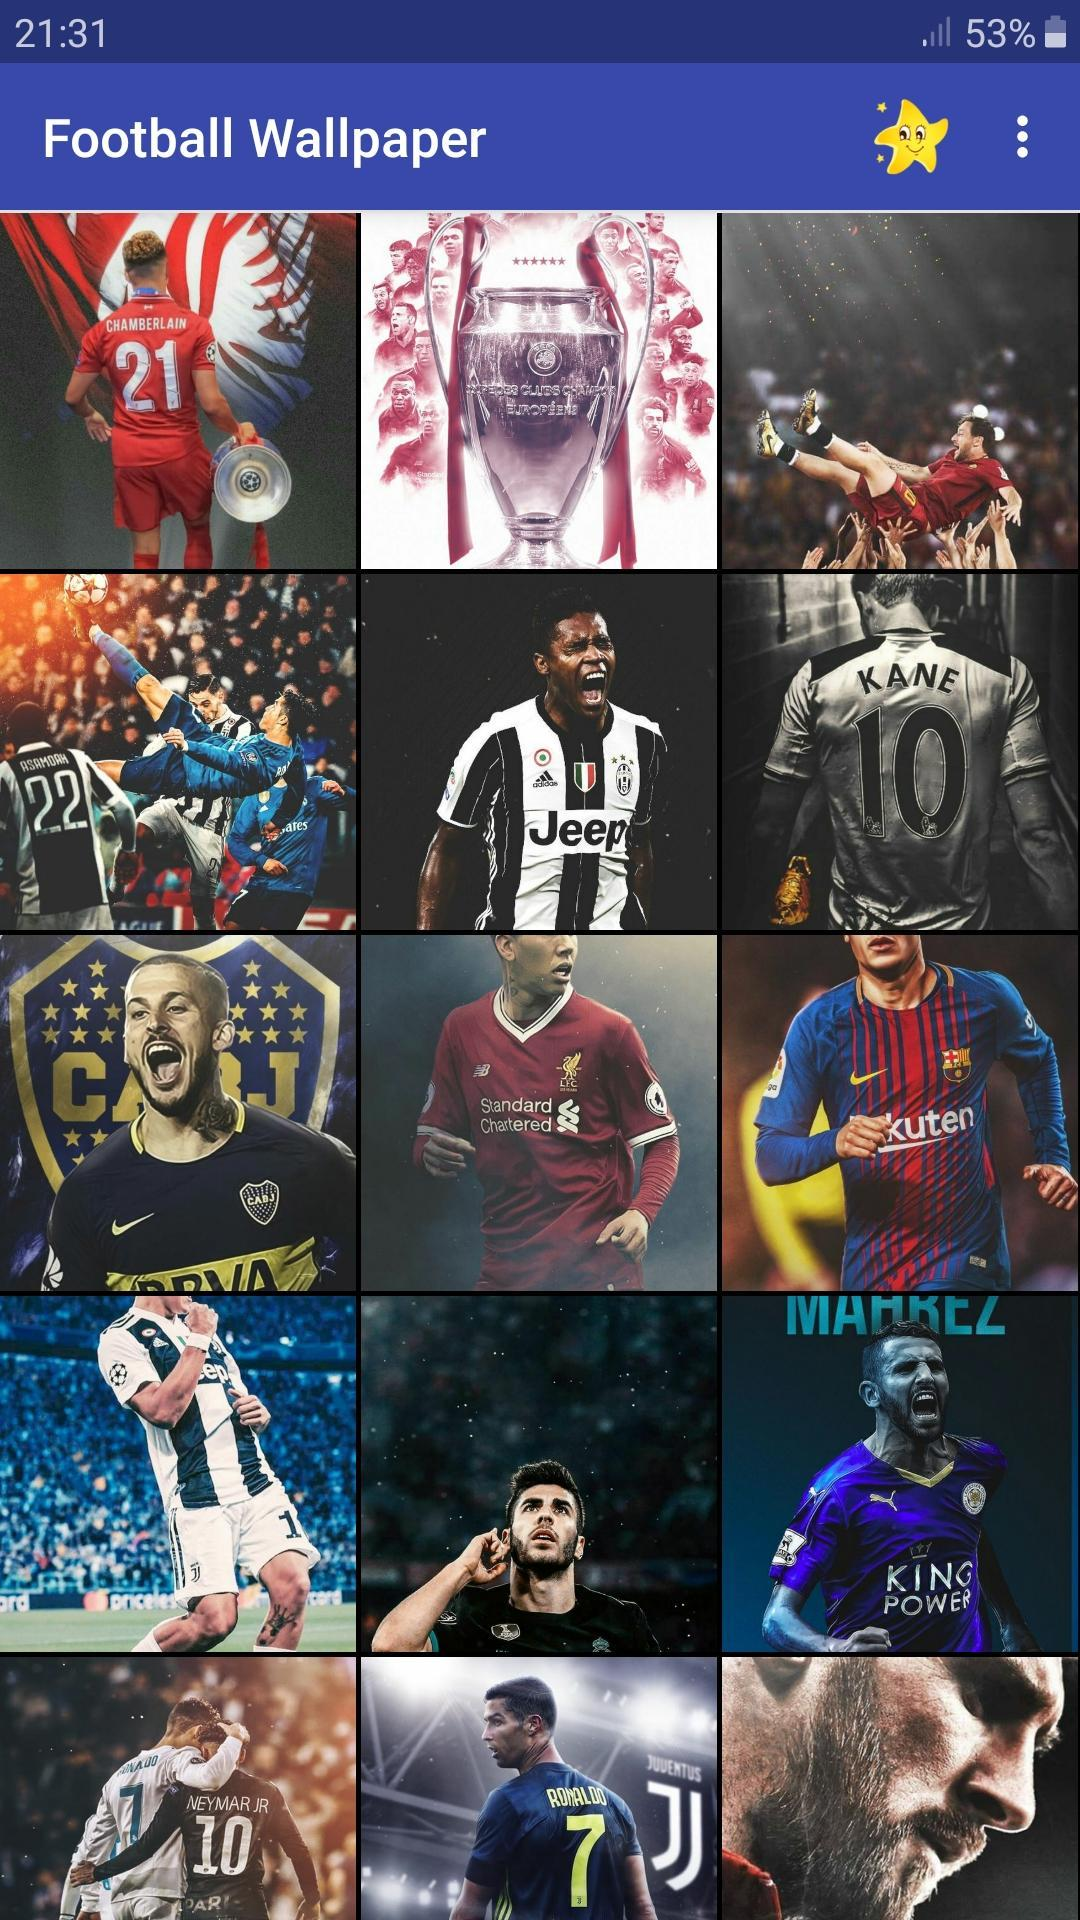 football wallpaper 2020 for Android   APK Download 1080x1920